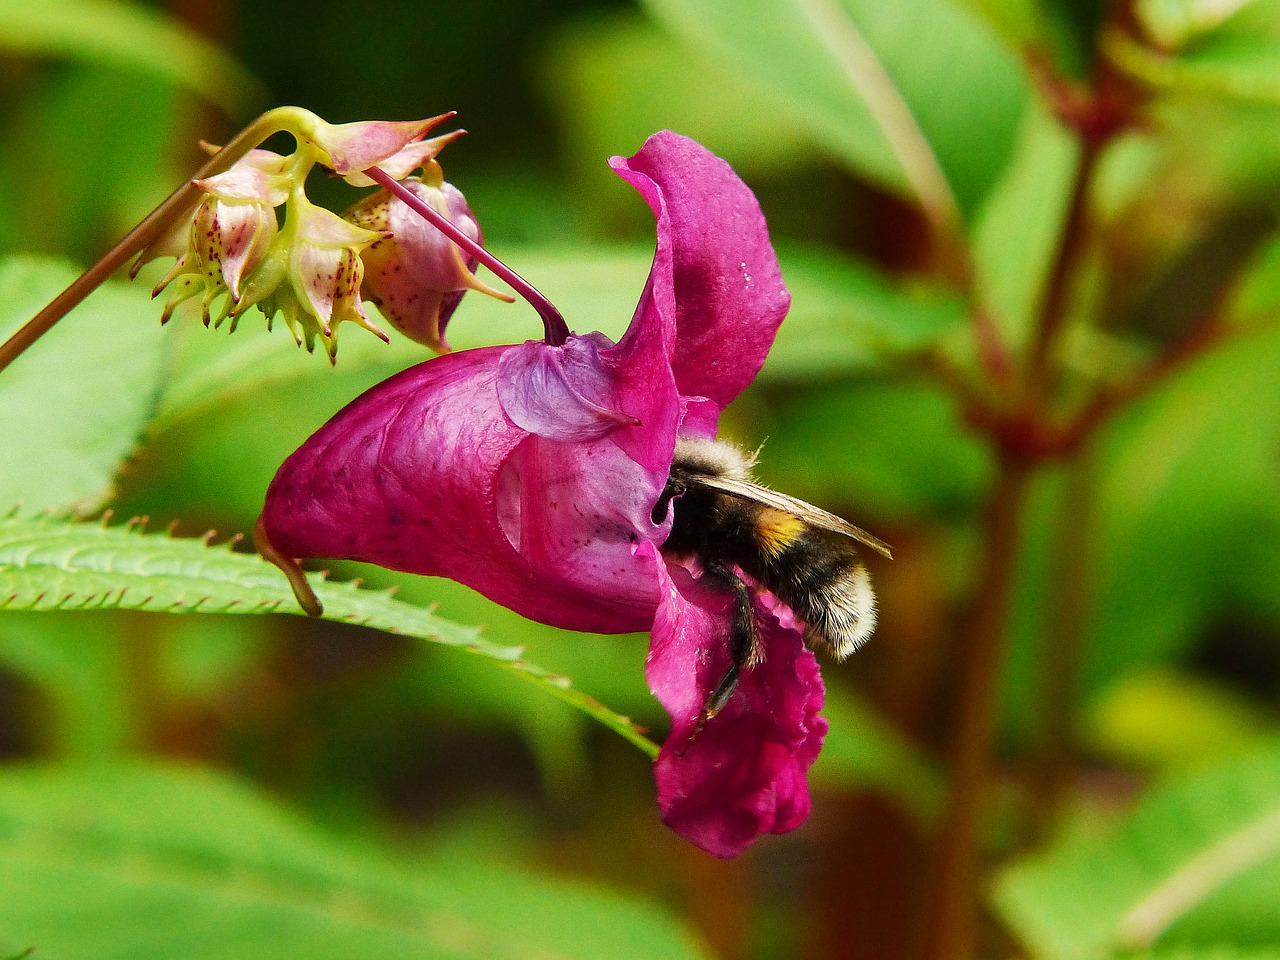 indian springkraut himalayan balsam hummel free photo